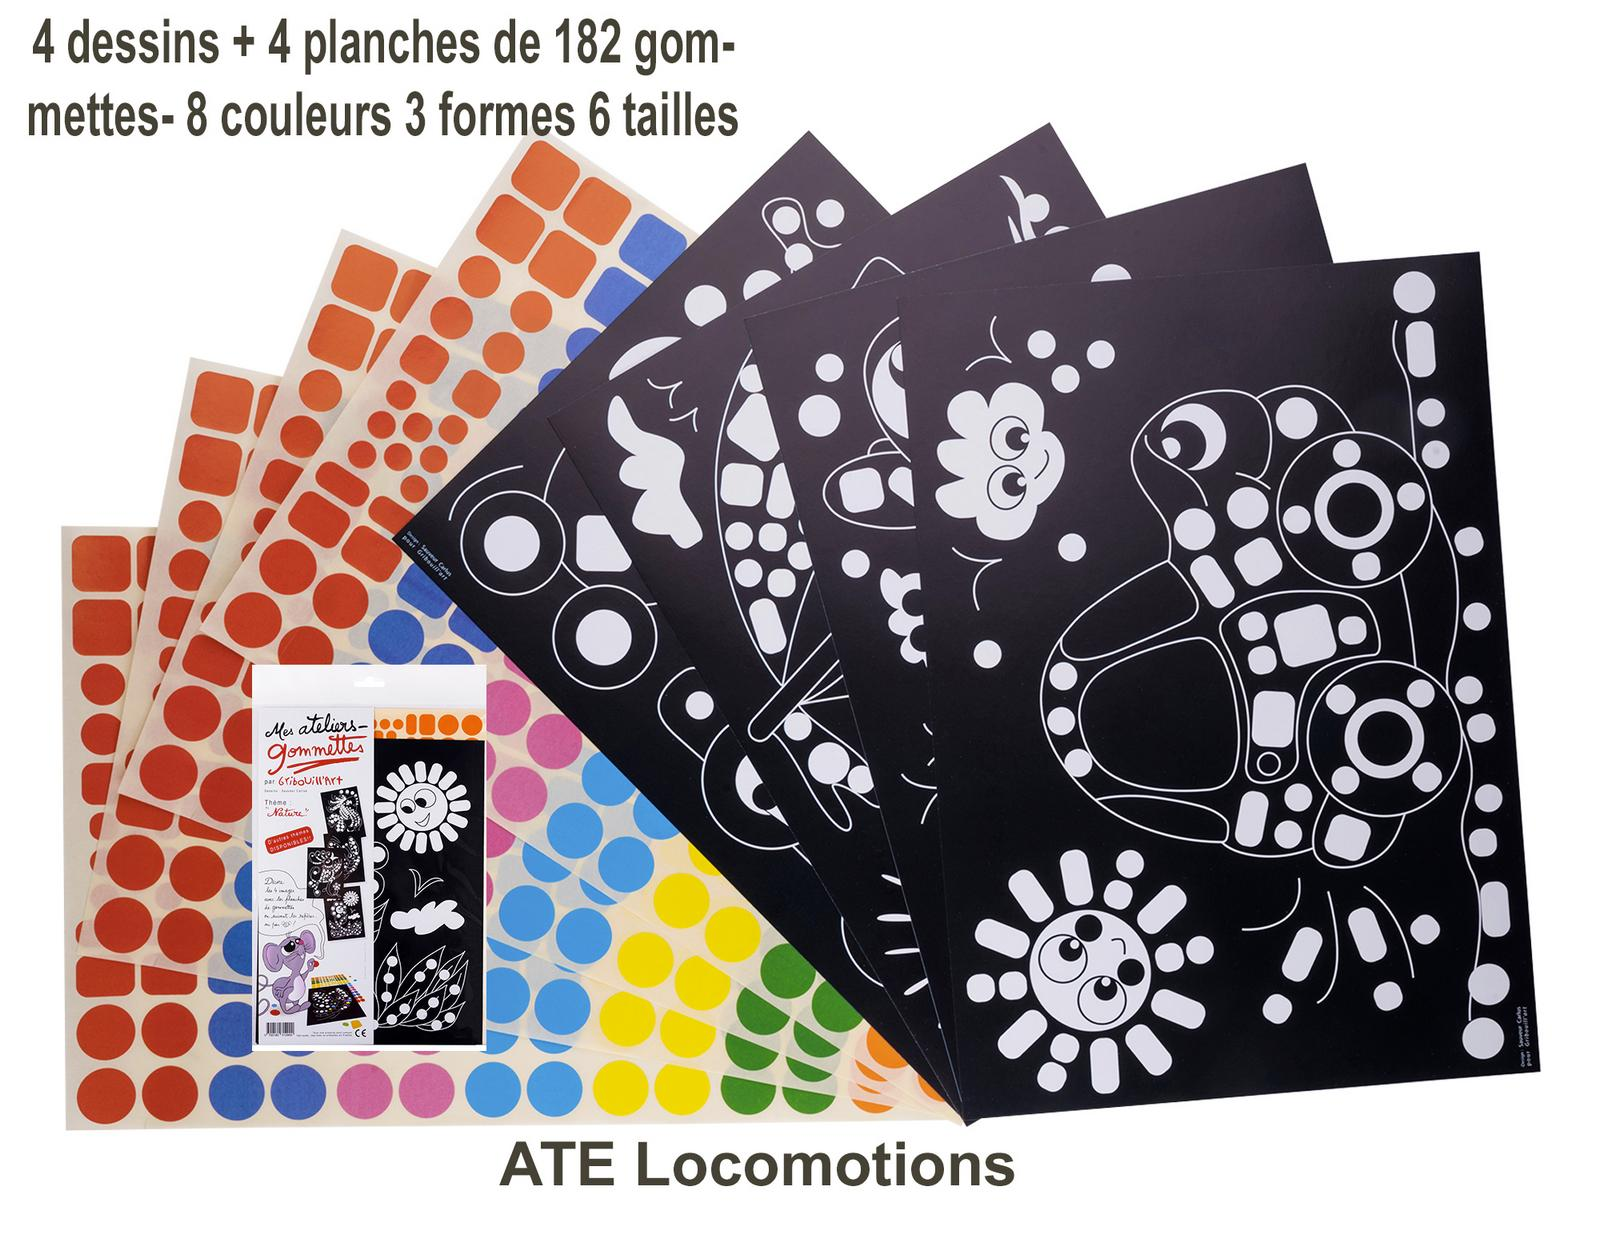 82 -ATE Locomotions